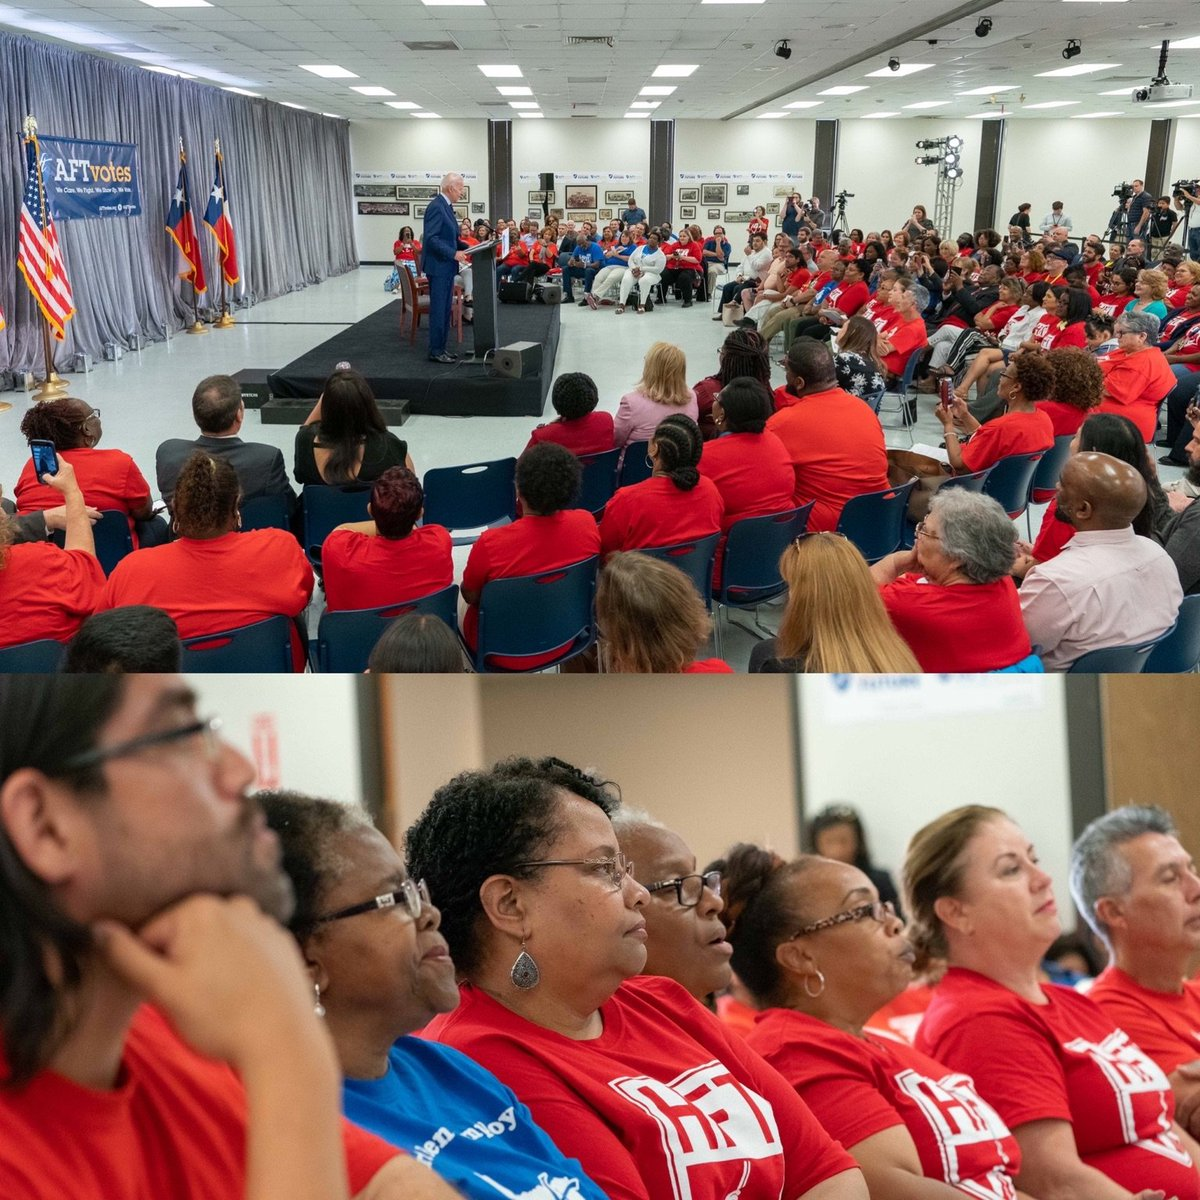 Thank you, @AFTunion, for endorsing @JoeBiden. Educators understand what our students need, and that's why so many are standing with my husband, Joe. This is our moment!